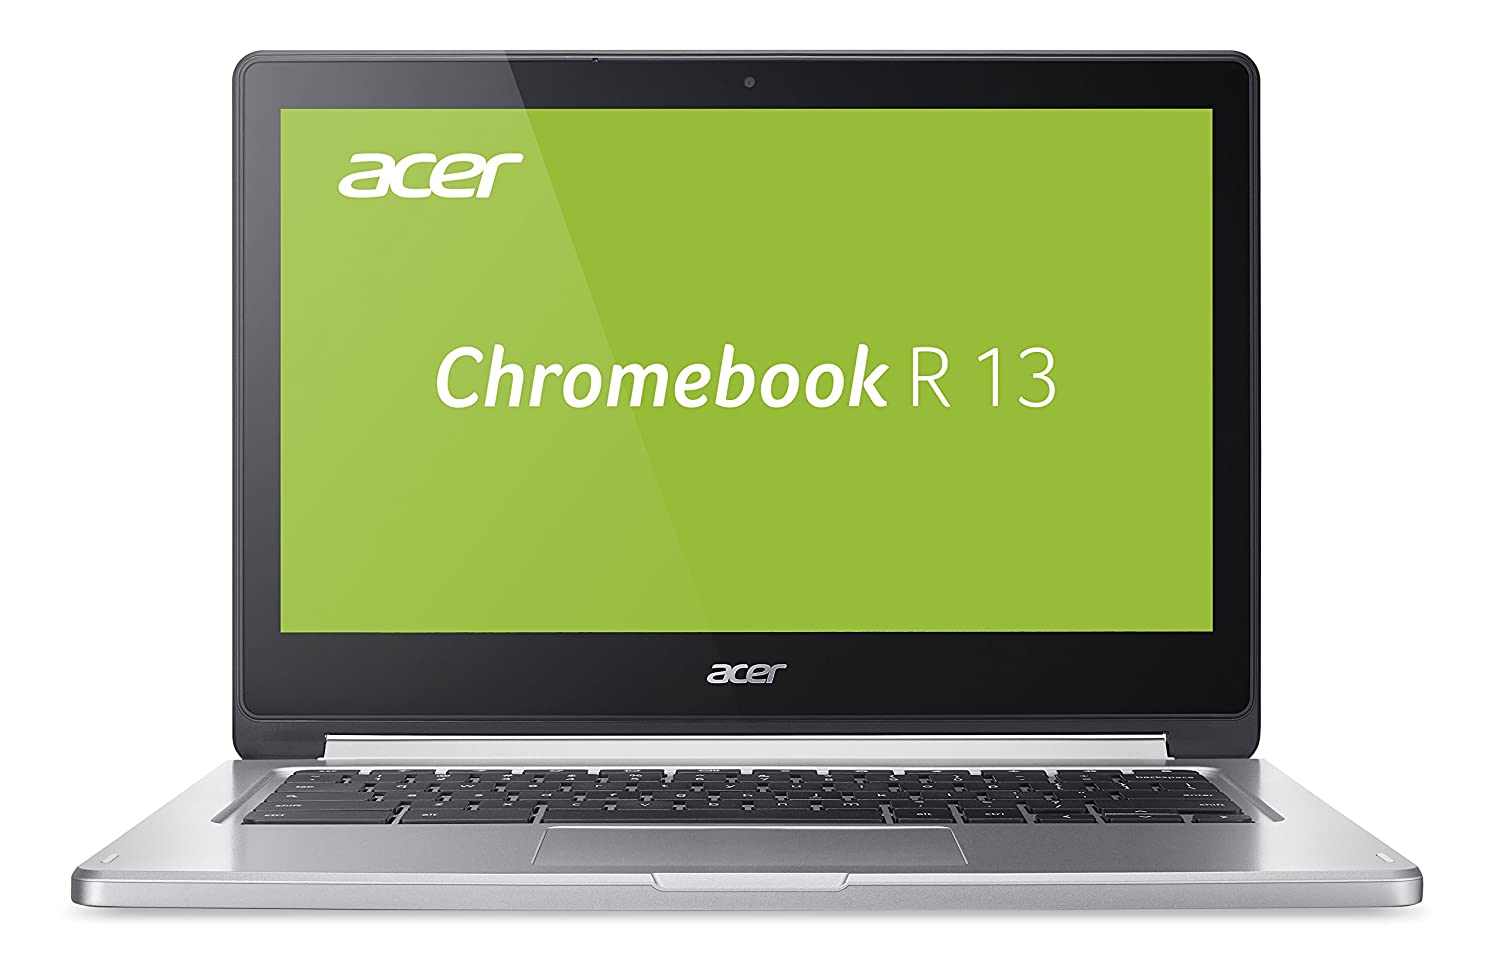 TALLA 32 GB (eMMC). Acer, Chromebook r13, 2in1 convertible full-hd ips touch-display 4gb 32gb flash chrome os - ordenador portátil [Teclado Aleman QWERTZ]